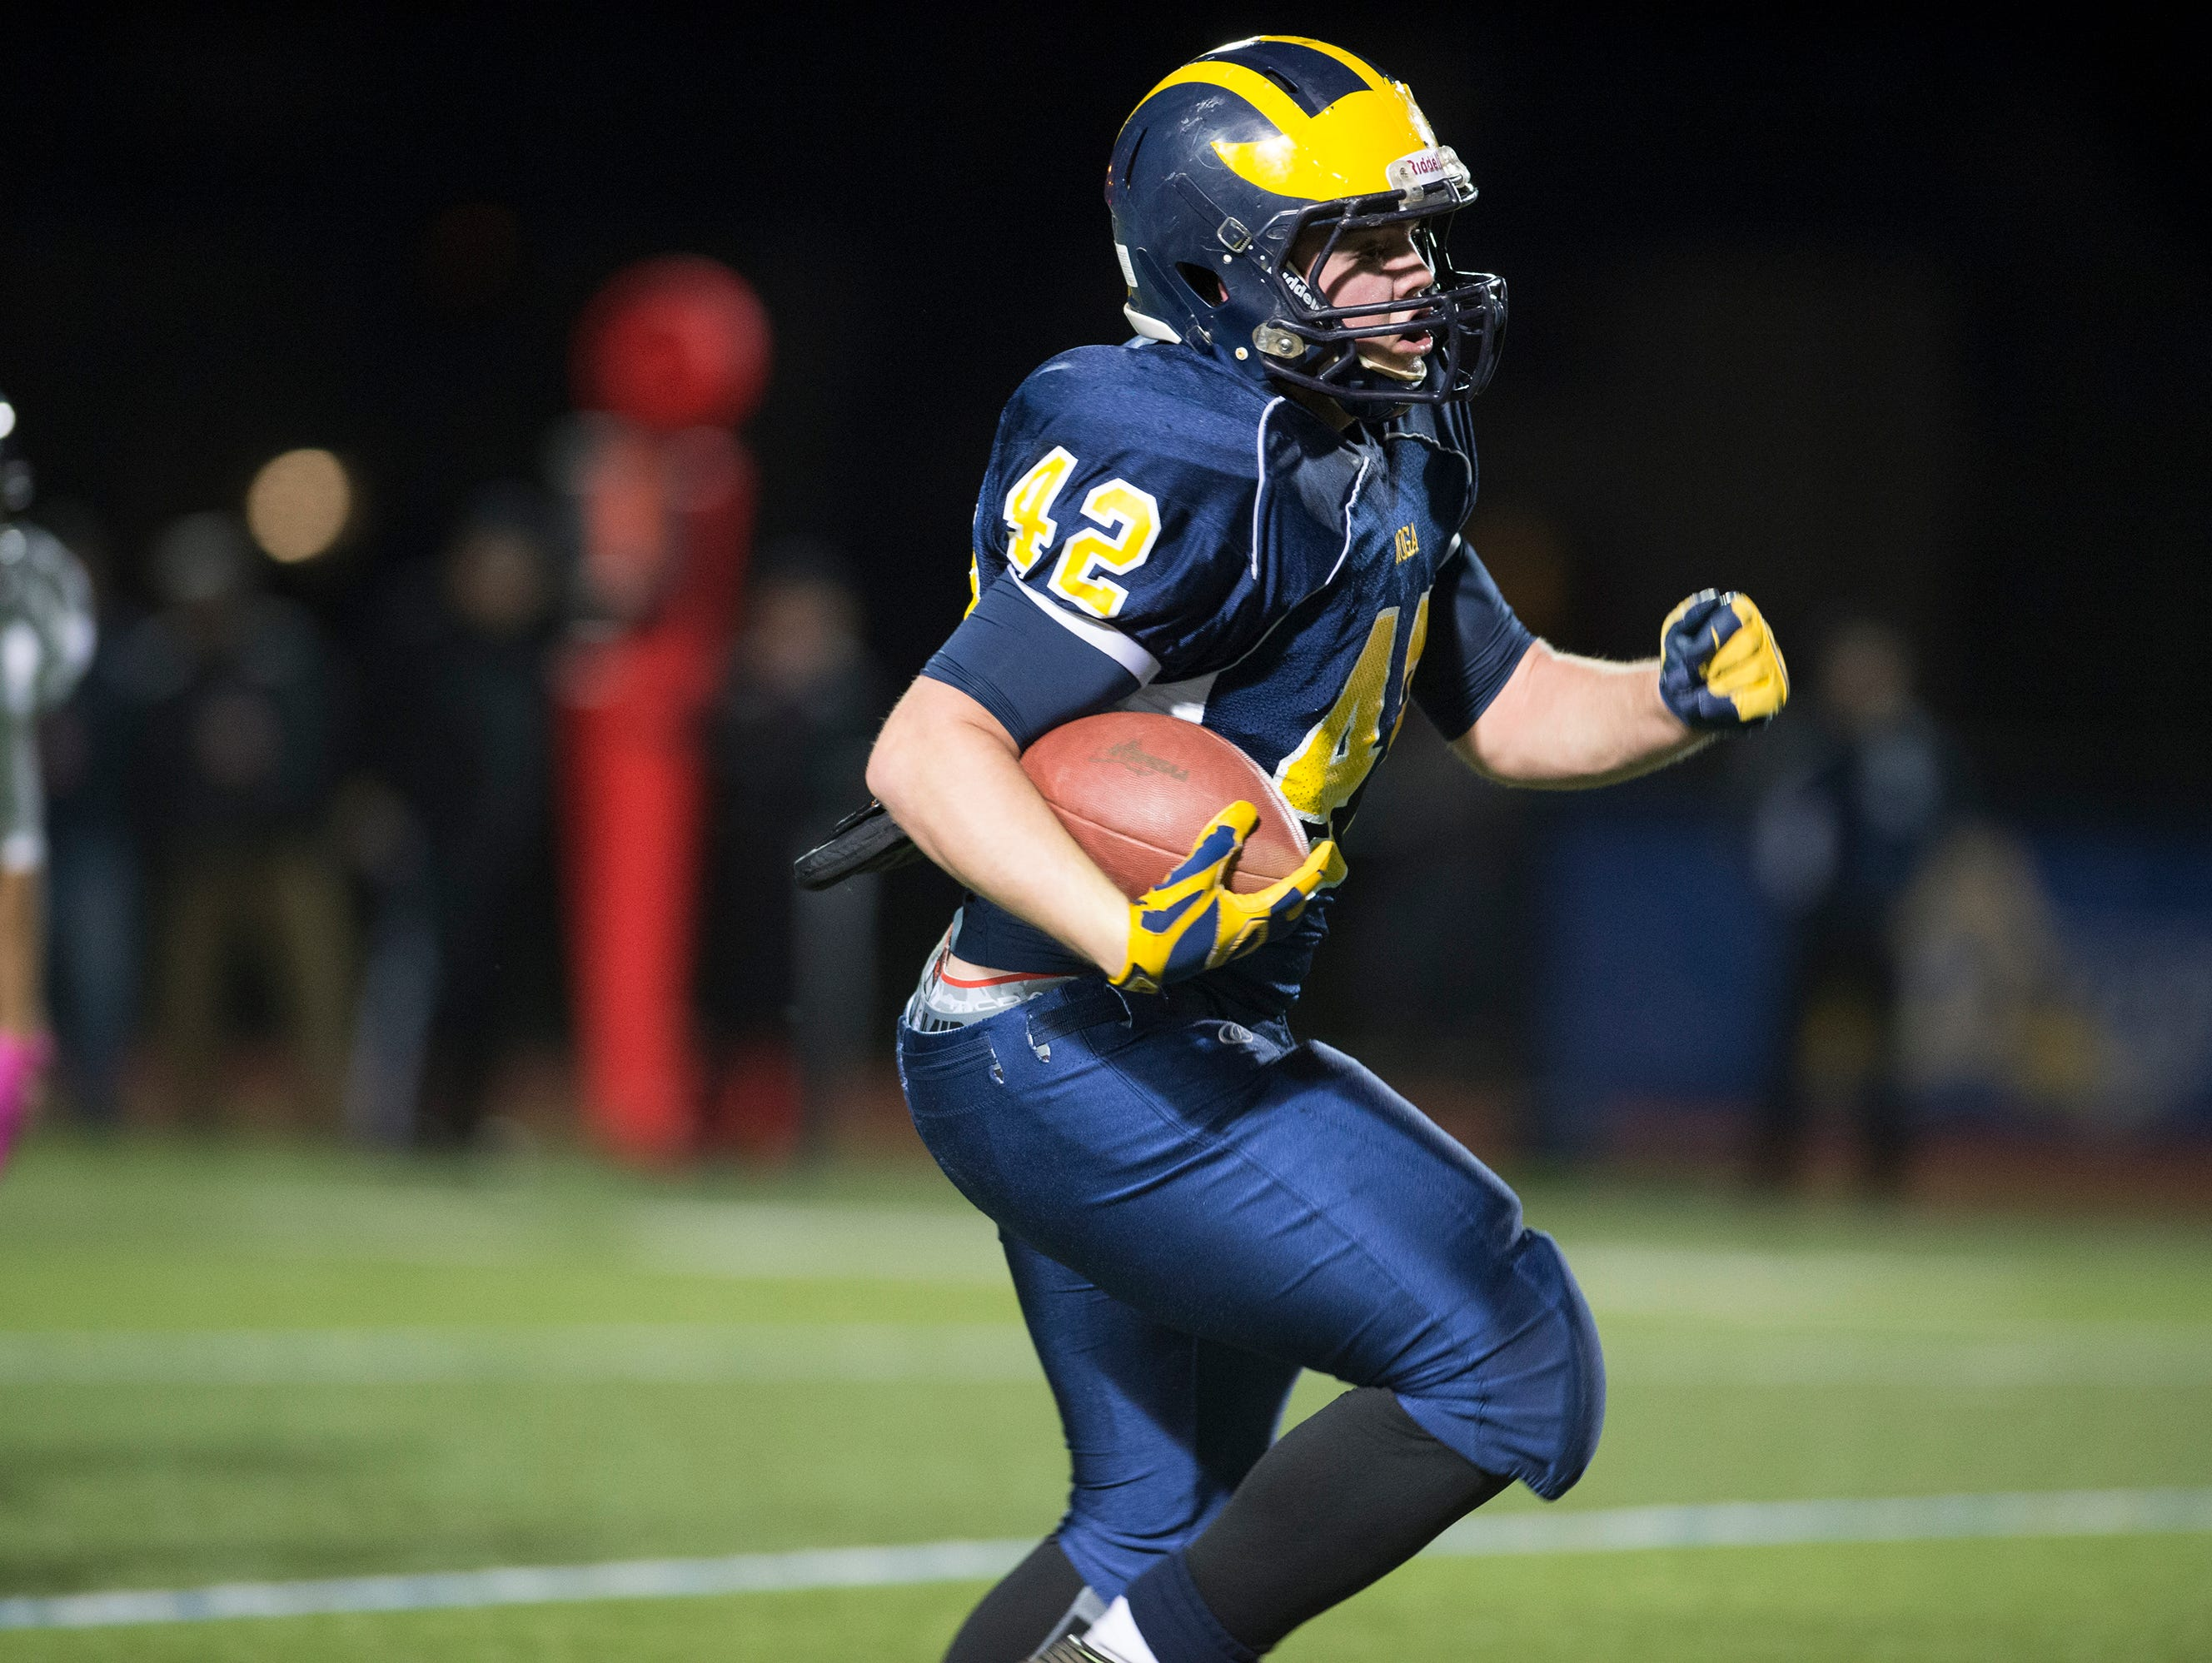 Tioga took on Bishop Kearney in the Class D state playoff semifinals at Cicero-North Syracuse on Friday, Nov. 20, 2015.